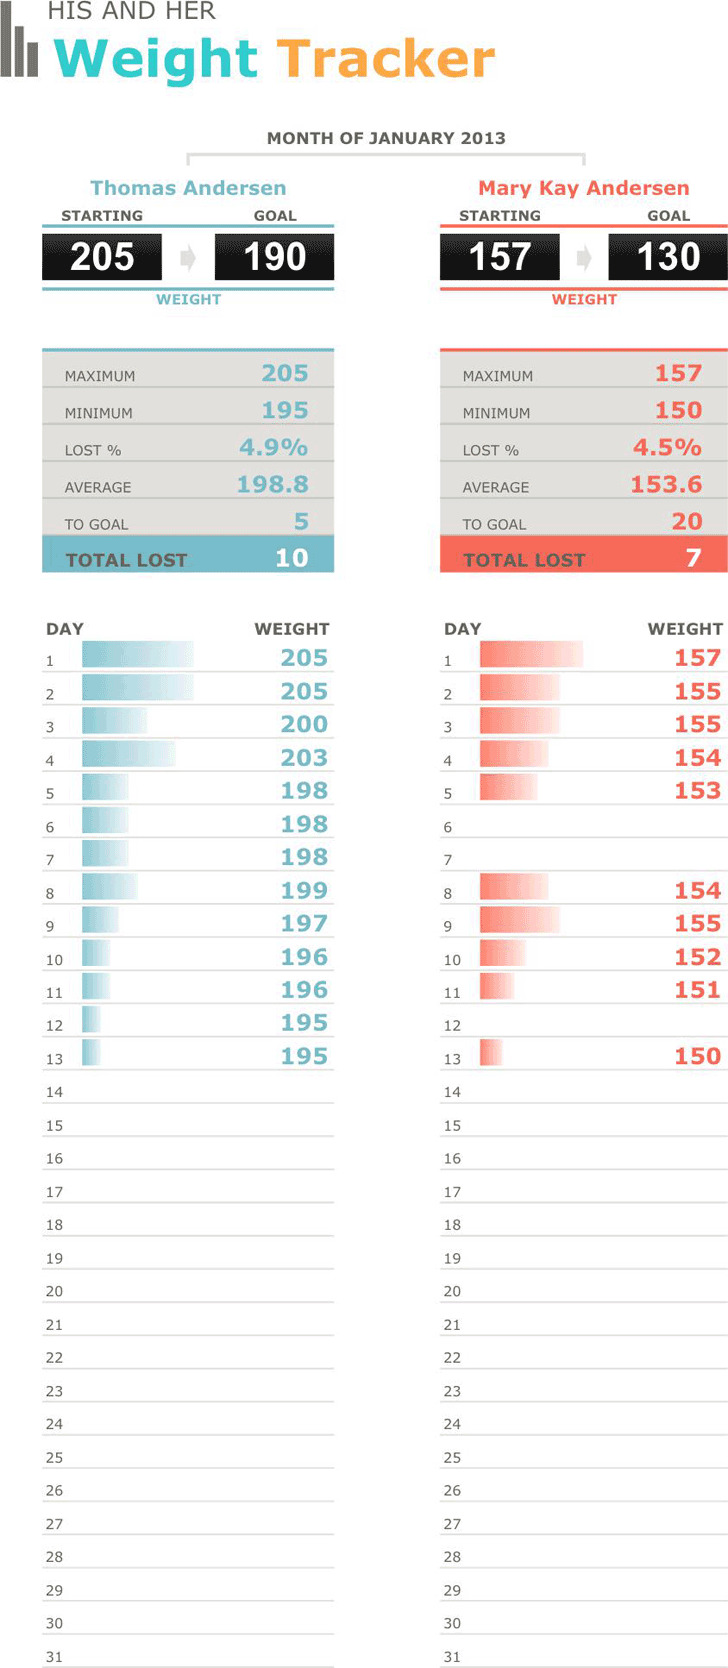 His And Her Weight Loss Tracker Chart